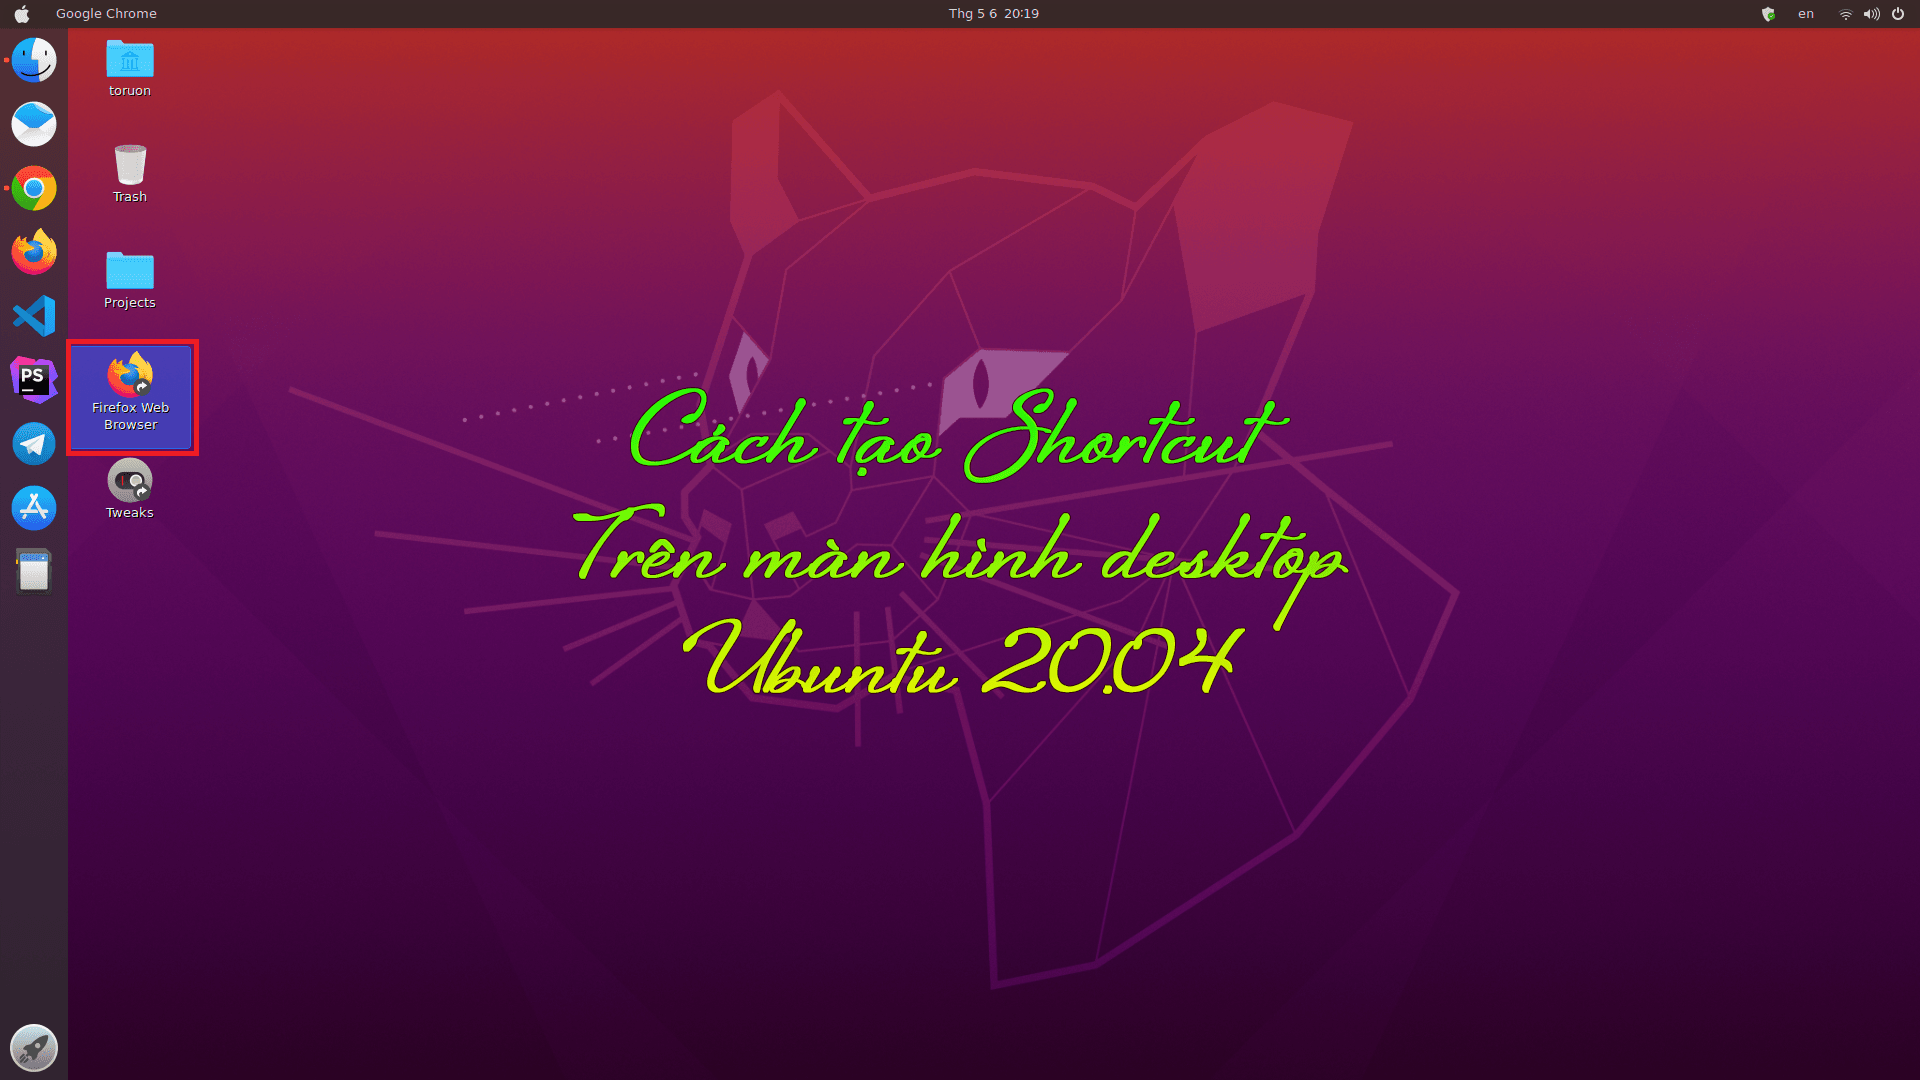 thumb tao shortcut desktop ubuntu 20.04